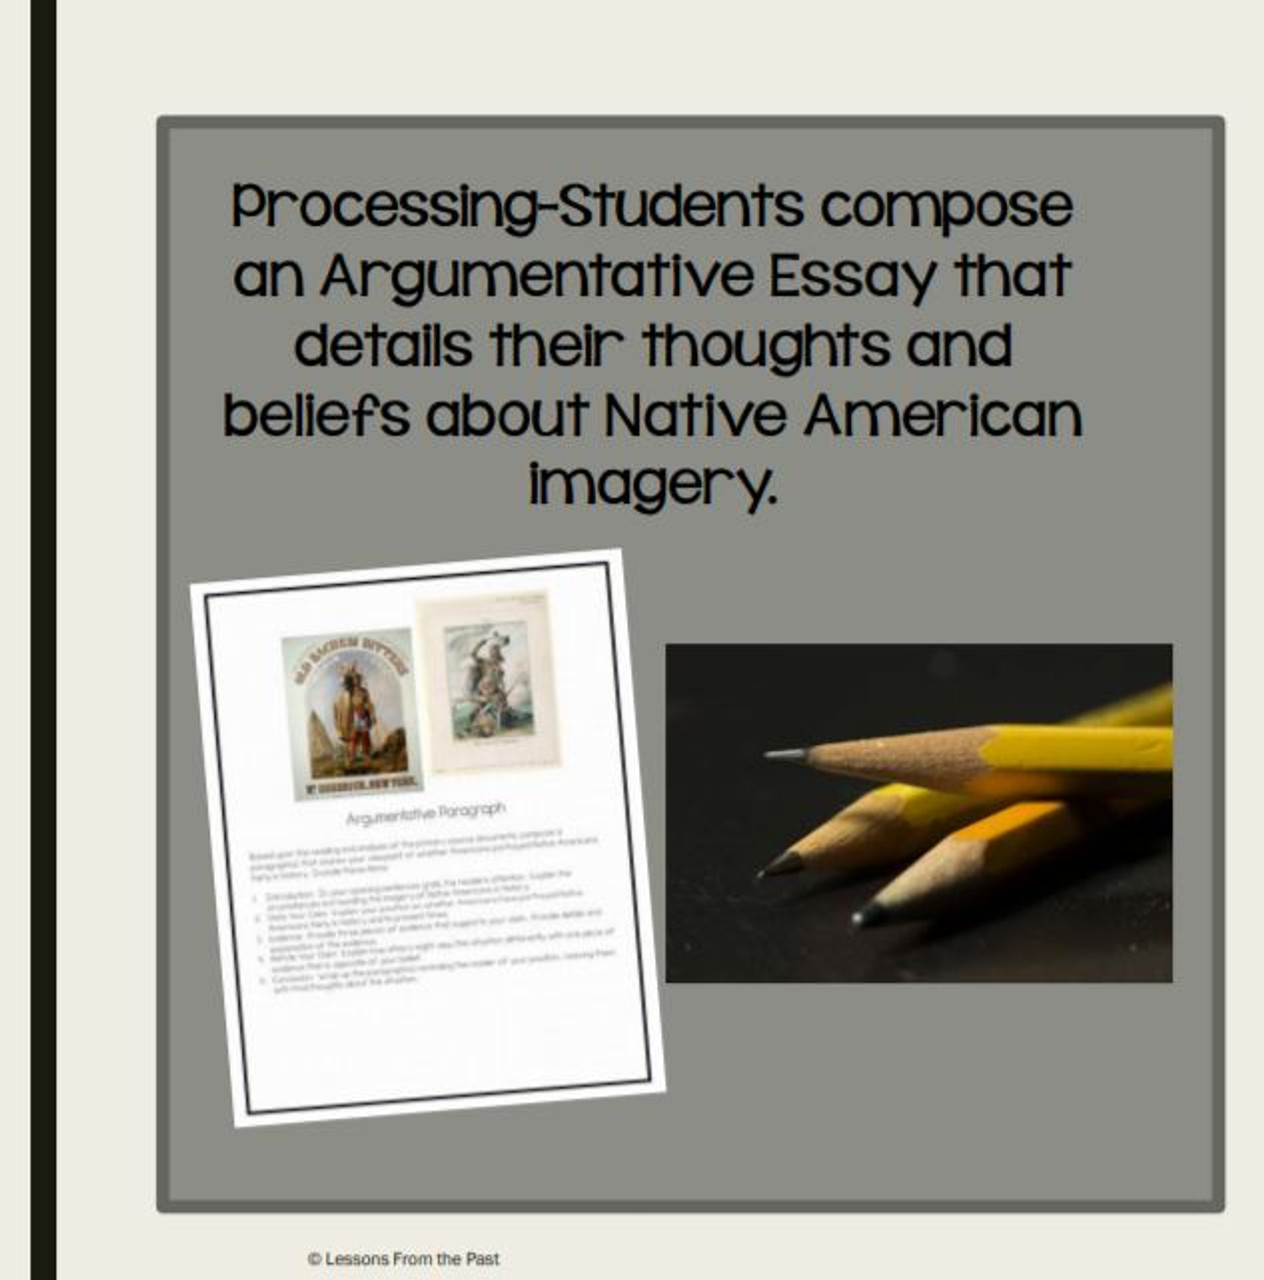 Imagery of Native Americans-Who Determined How Native Americans Are Viewed?